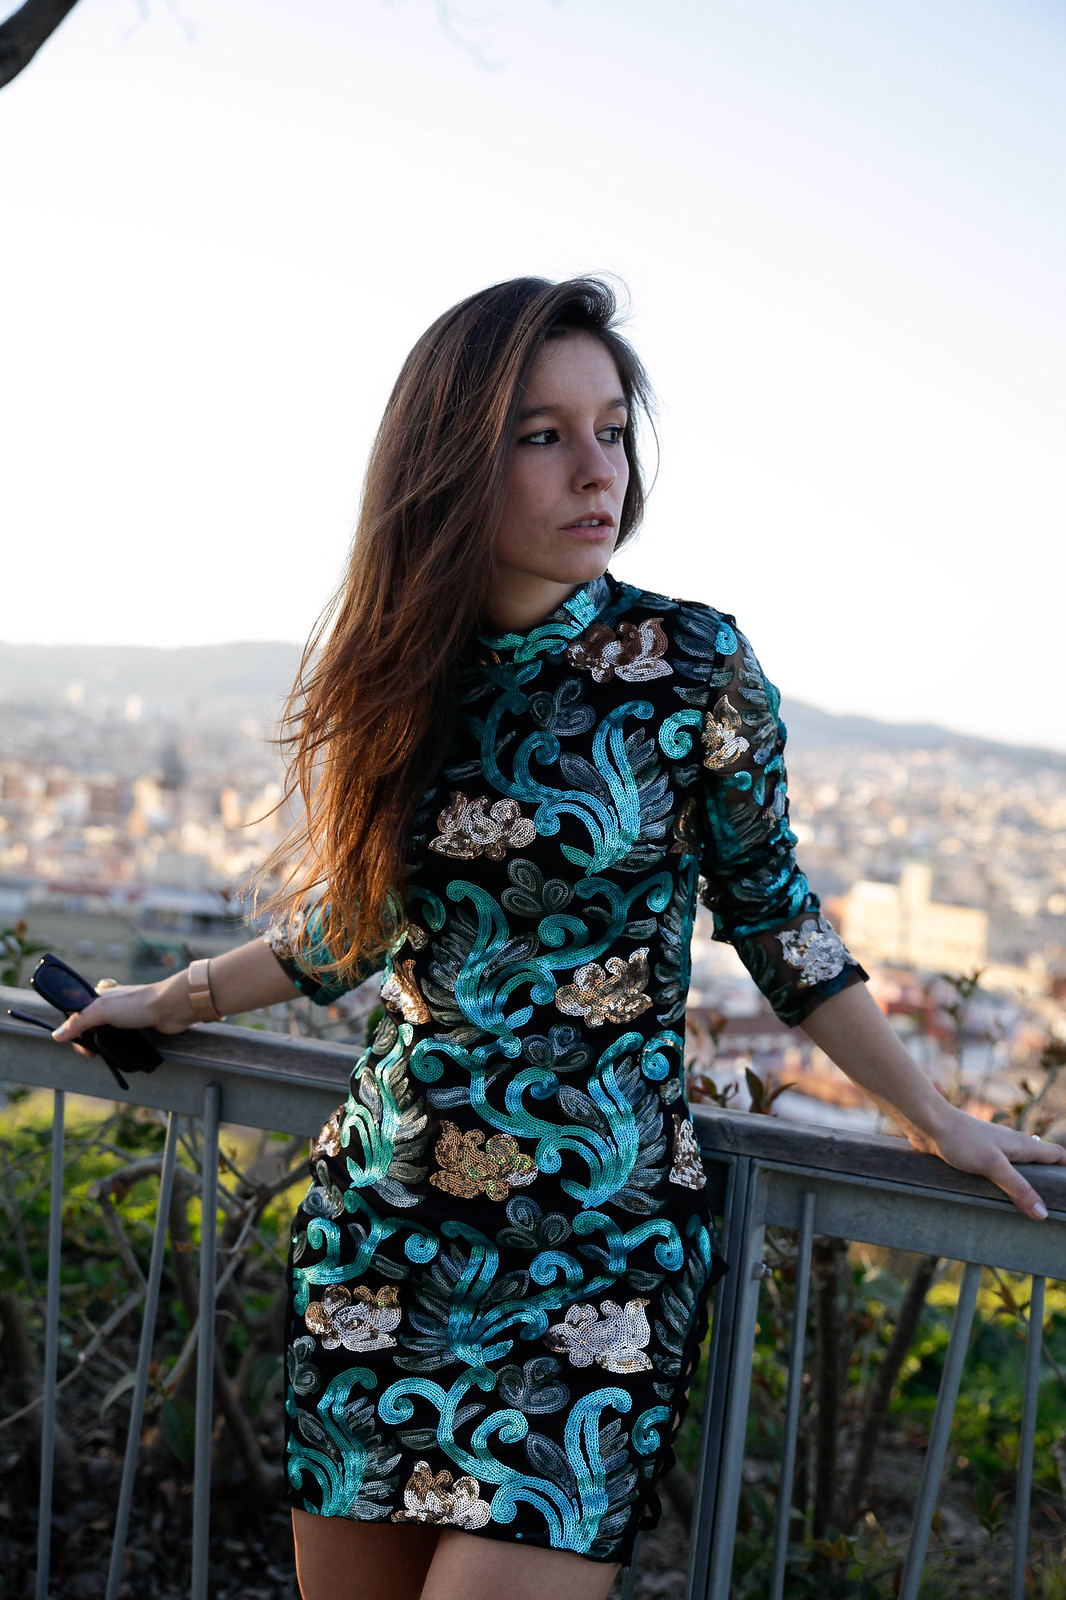 07_Green_sequins_dress_outfit_the_guest_girl_theguestgirl_laura_santolaria_fashion_blogger_danity_paris_influencer_barcelona